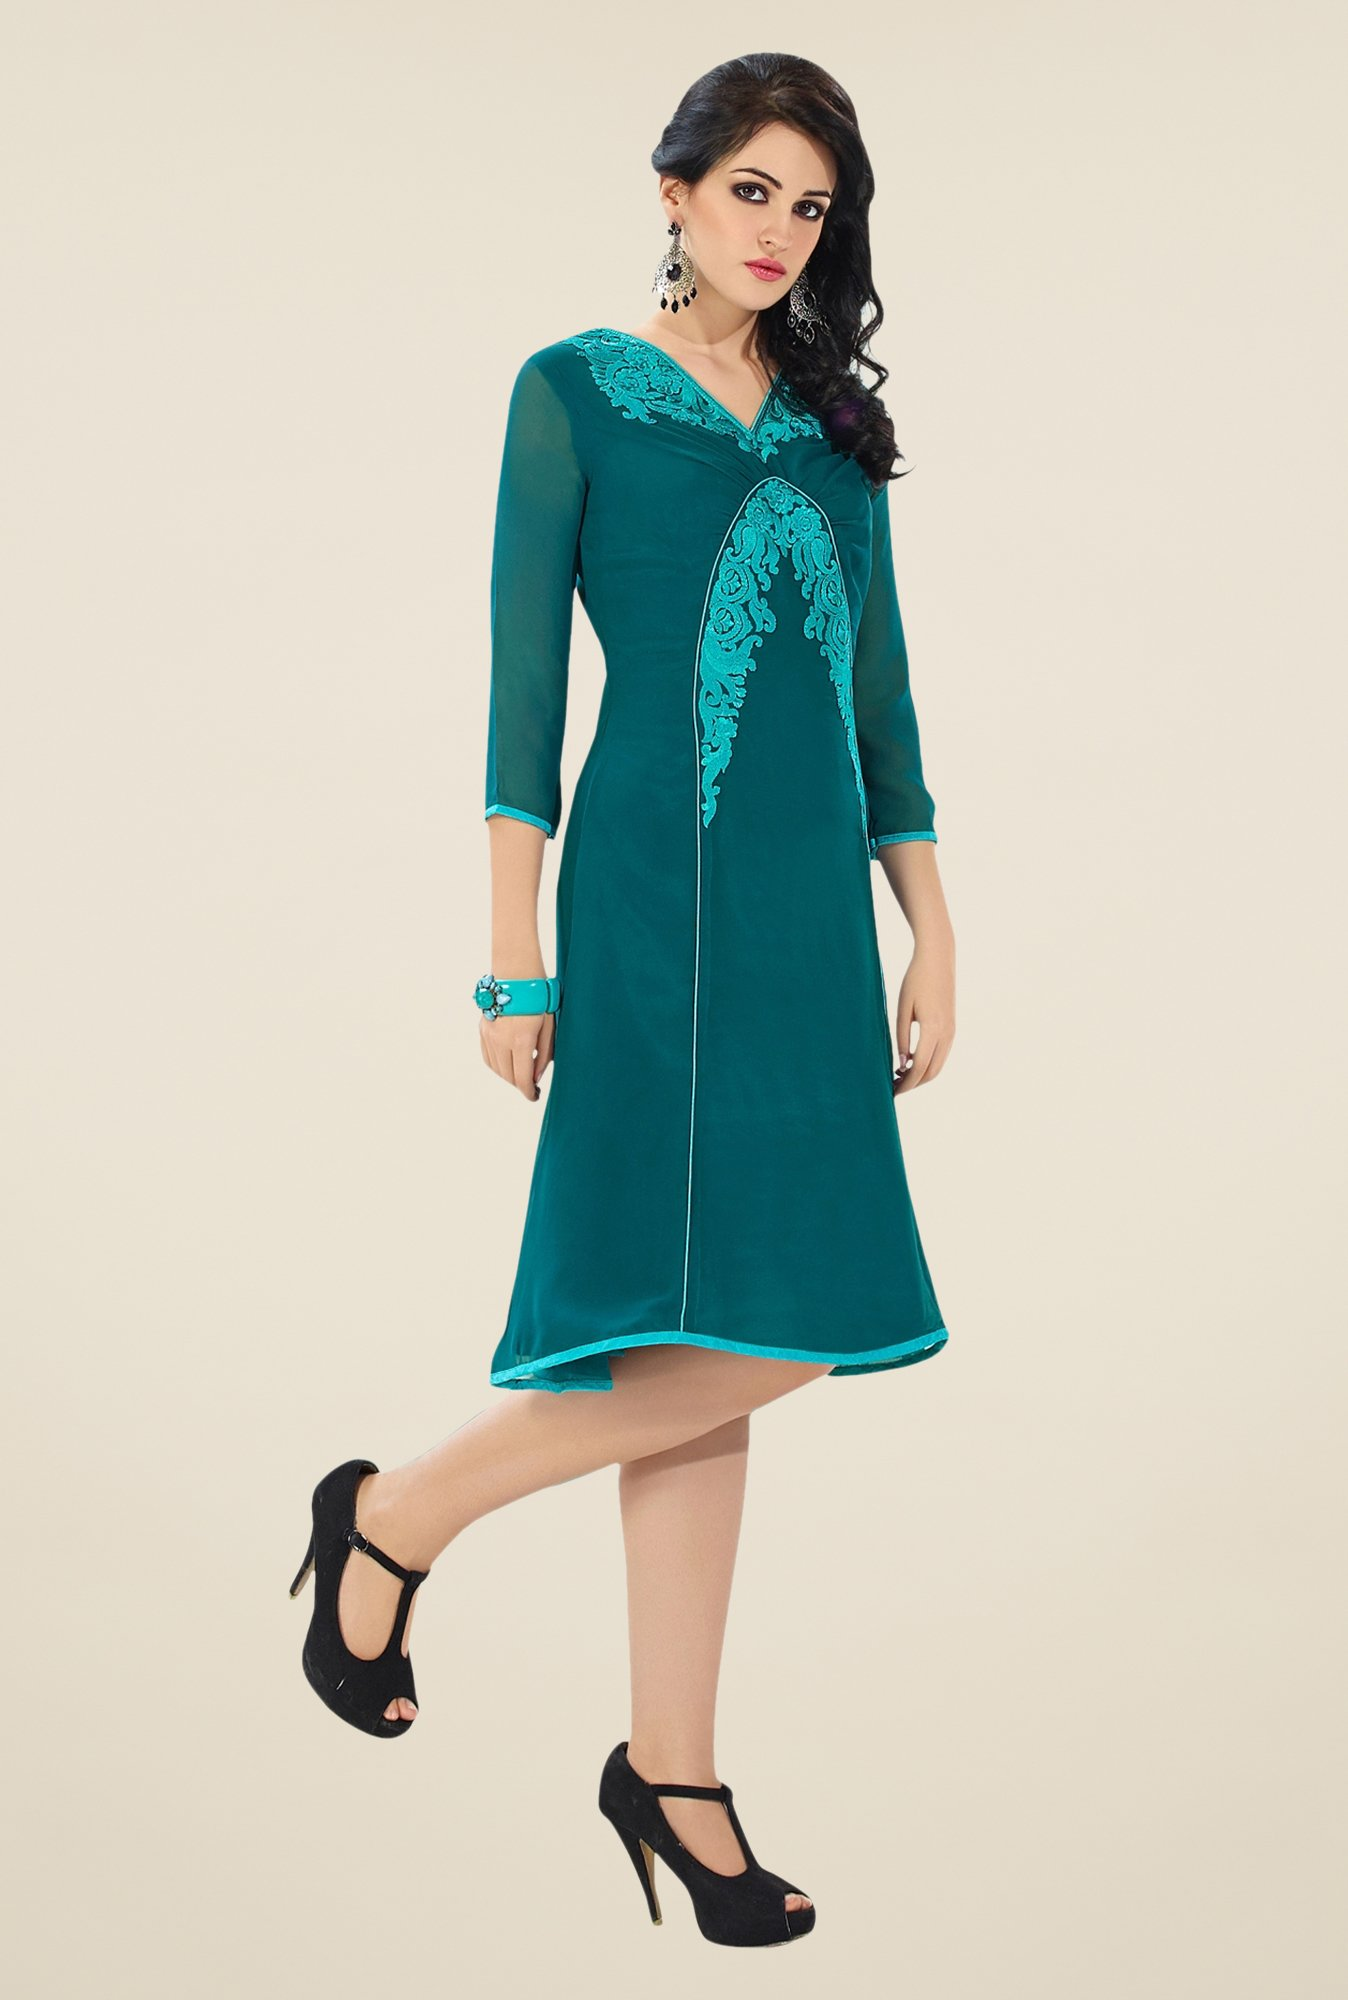 Triveni Teal Embroidered Kurti